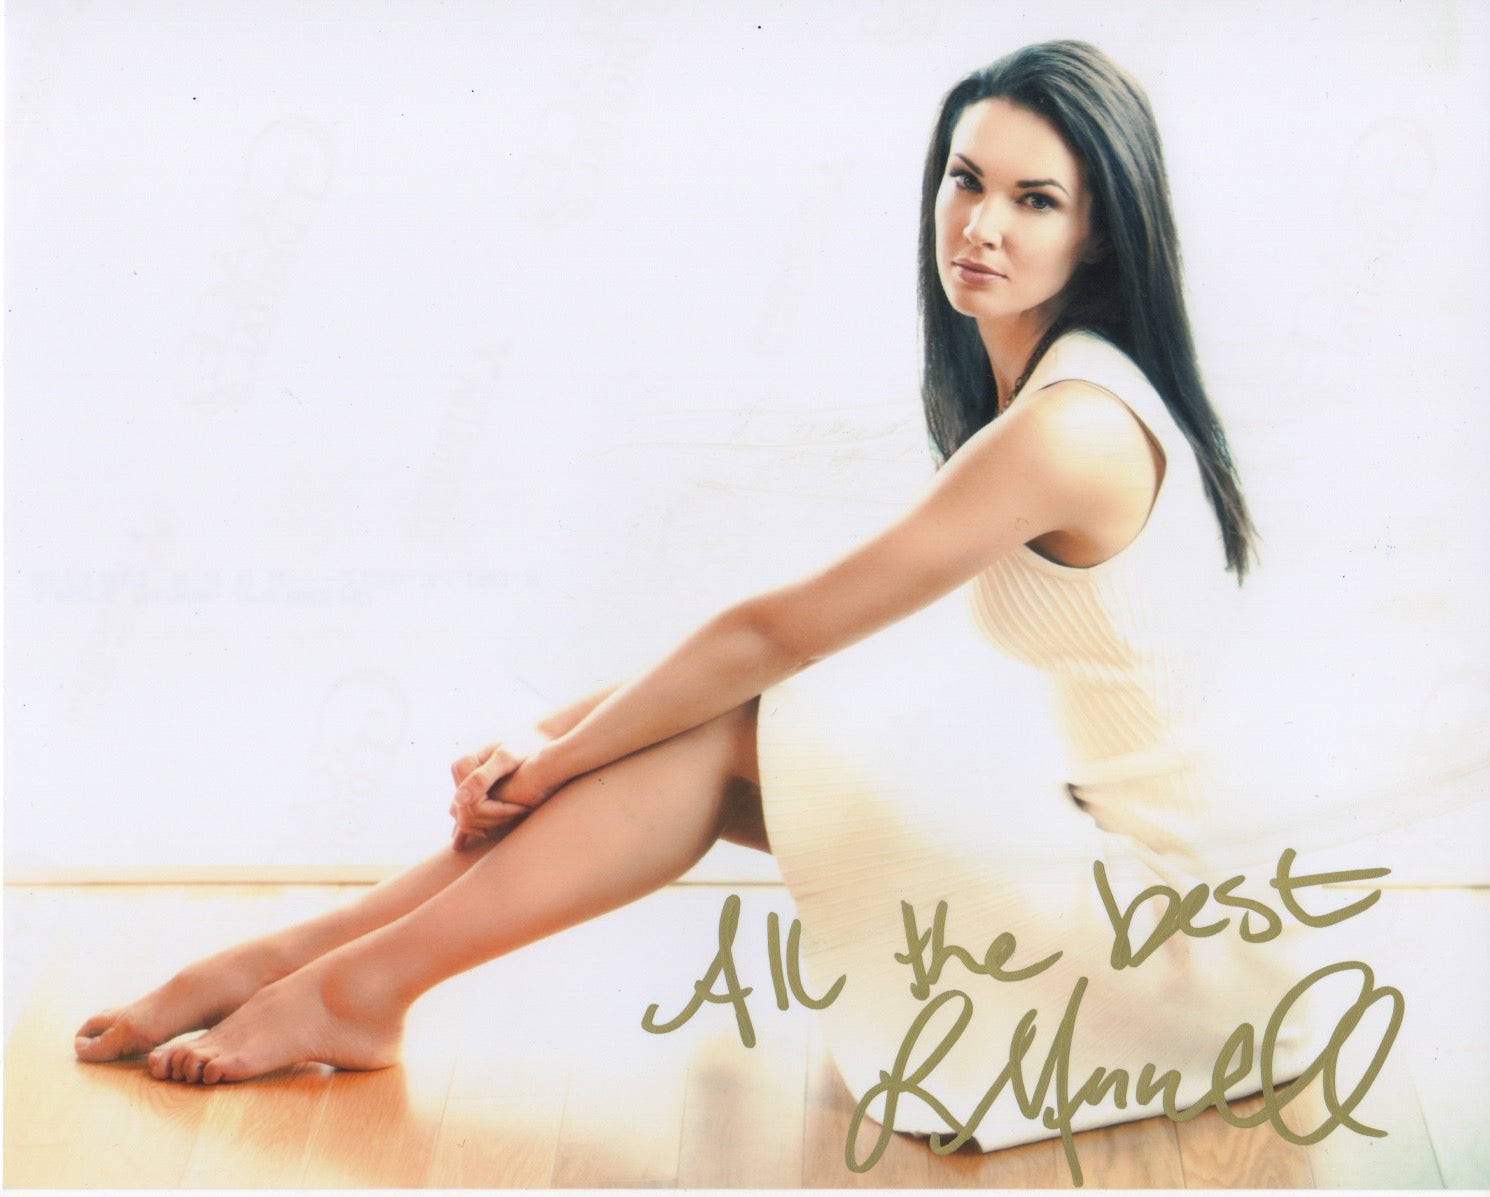 Laura Mennell Sexy Autograph Signed 8x10 Photo #7